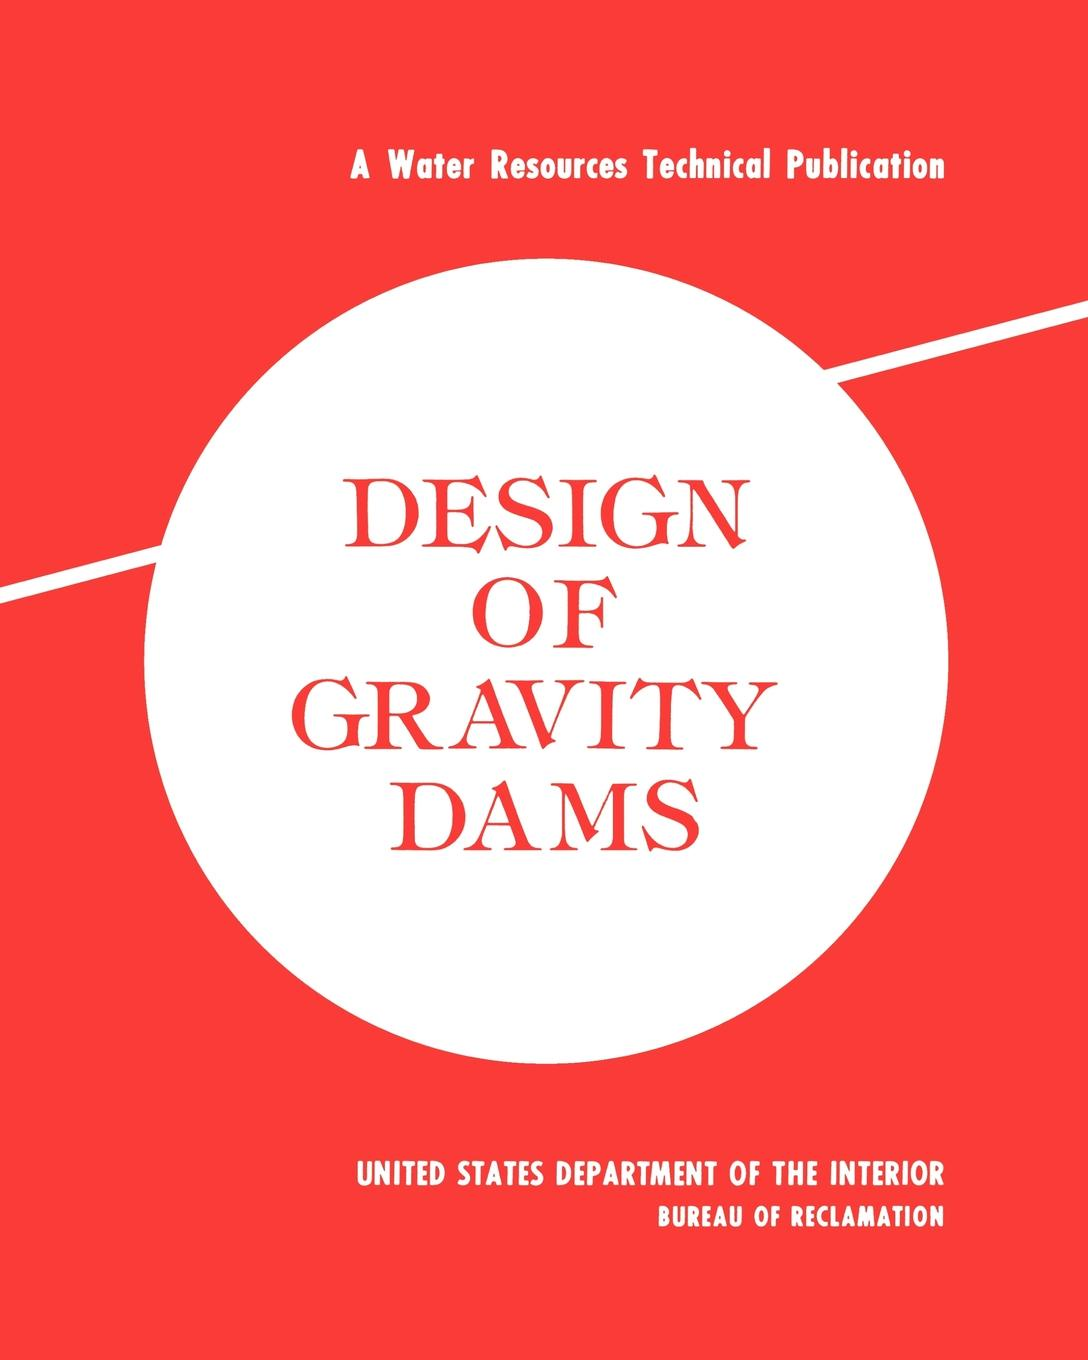 лучшая цена Bureau of Reclamation, U.S. Department of the Interior Design of Gravity Dams. Design Manual for Concrete Gravity Dams (A Water Resources Technical Publication)